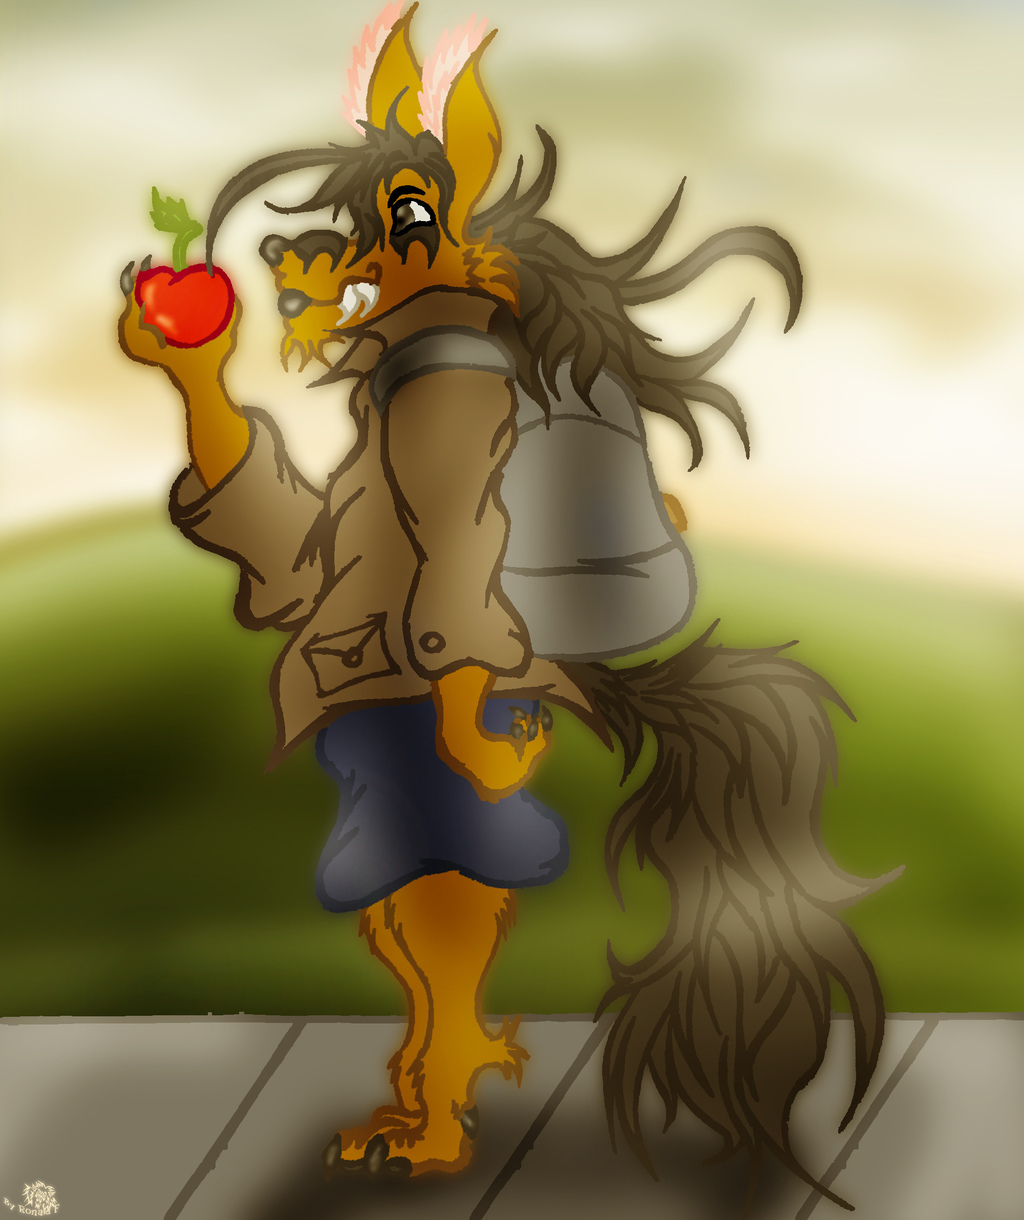 Most recent image: An Apple